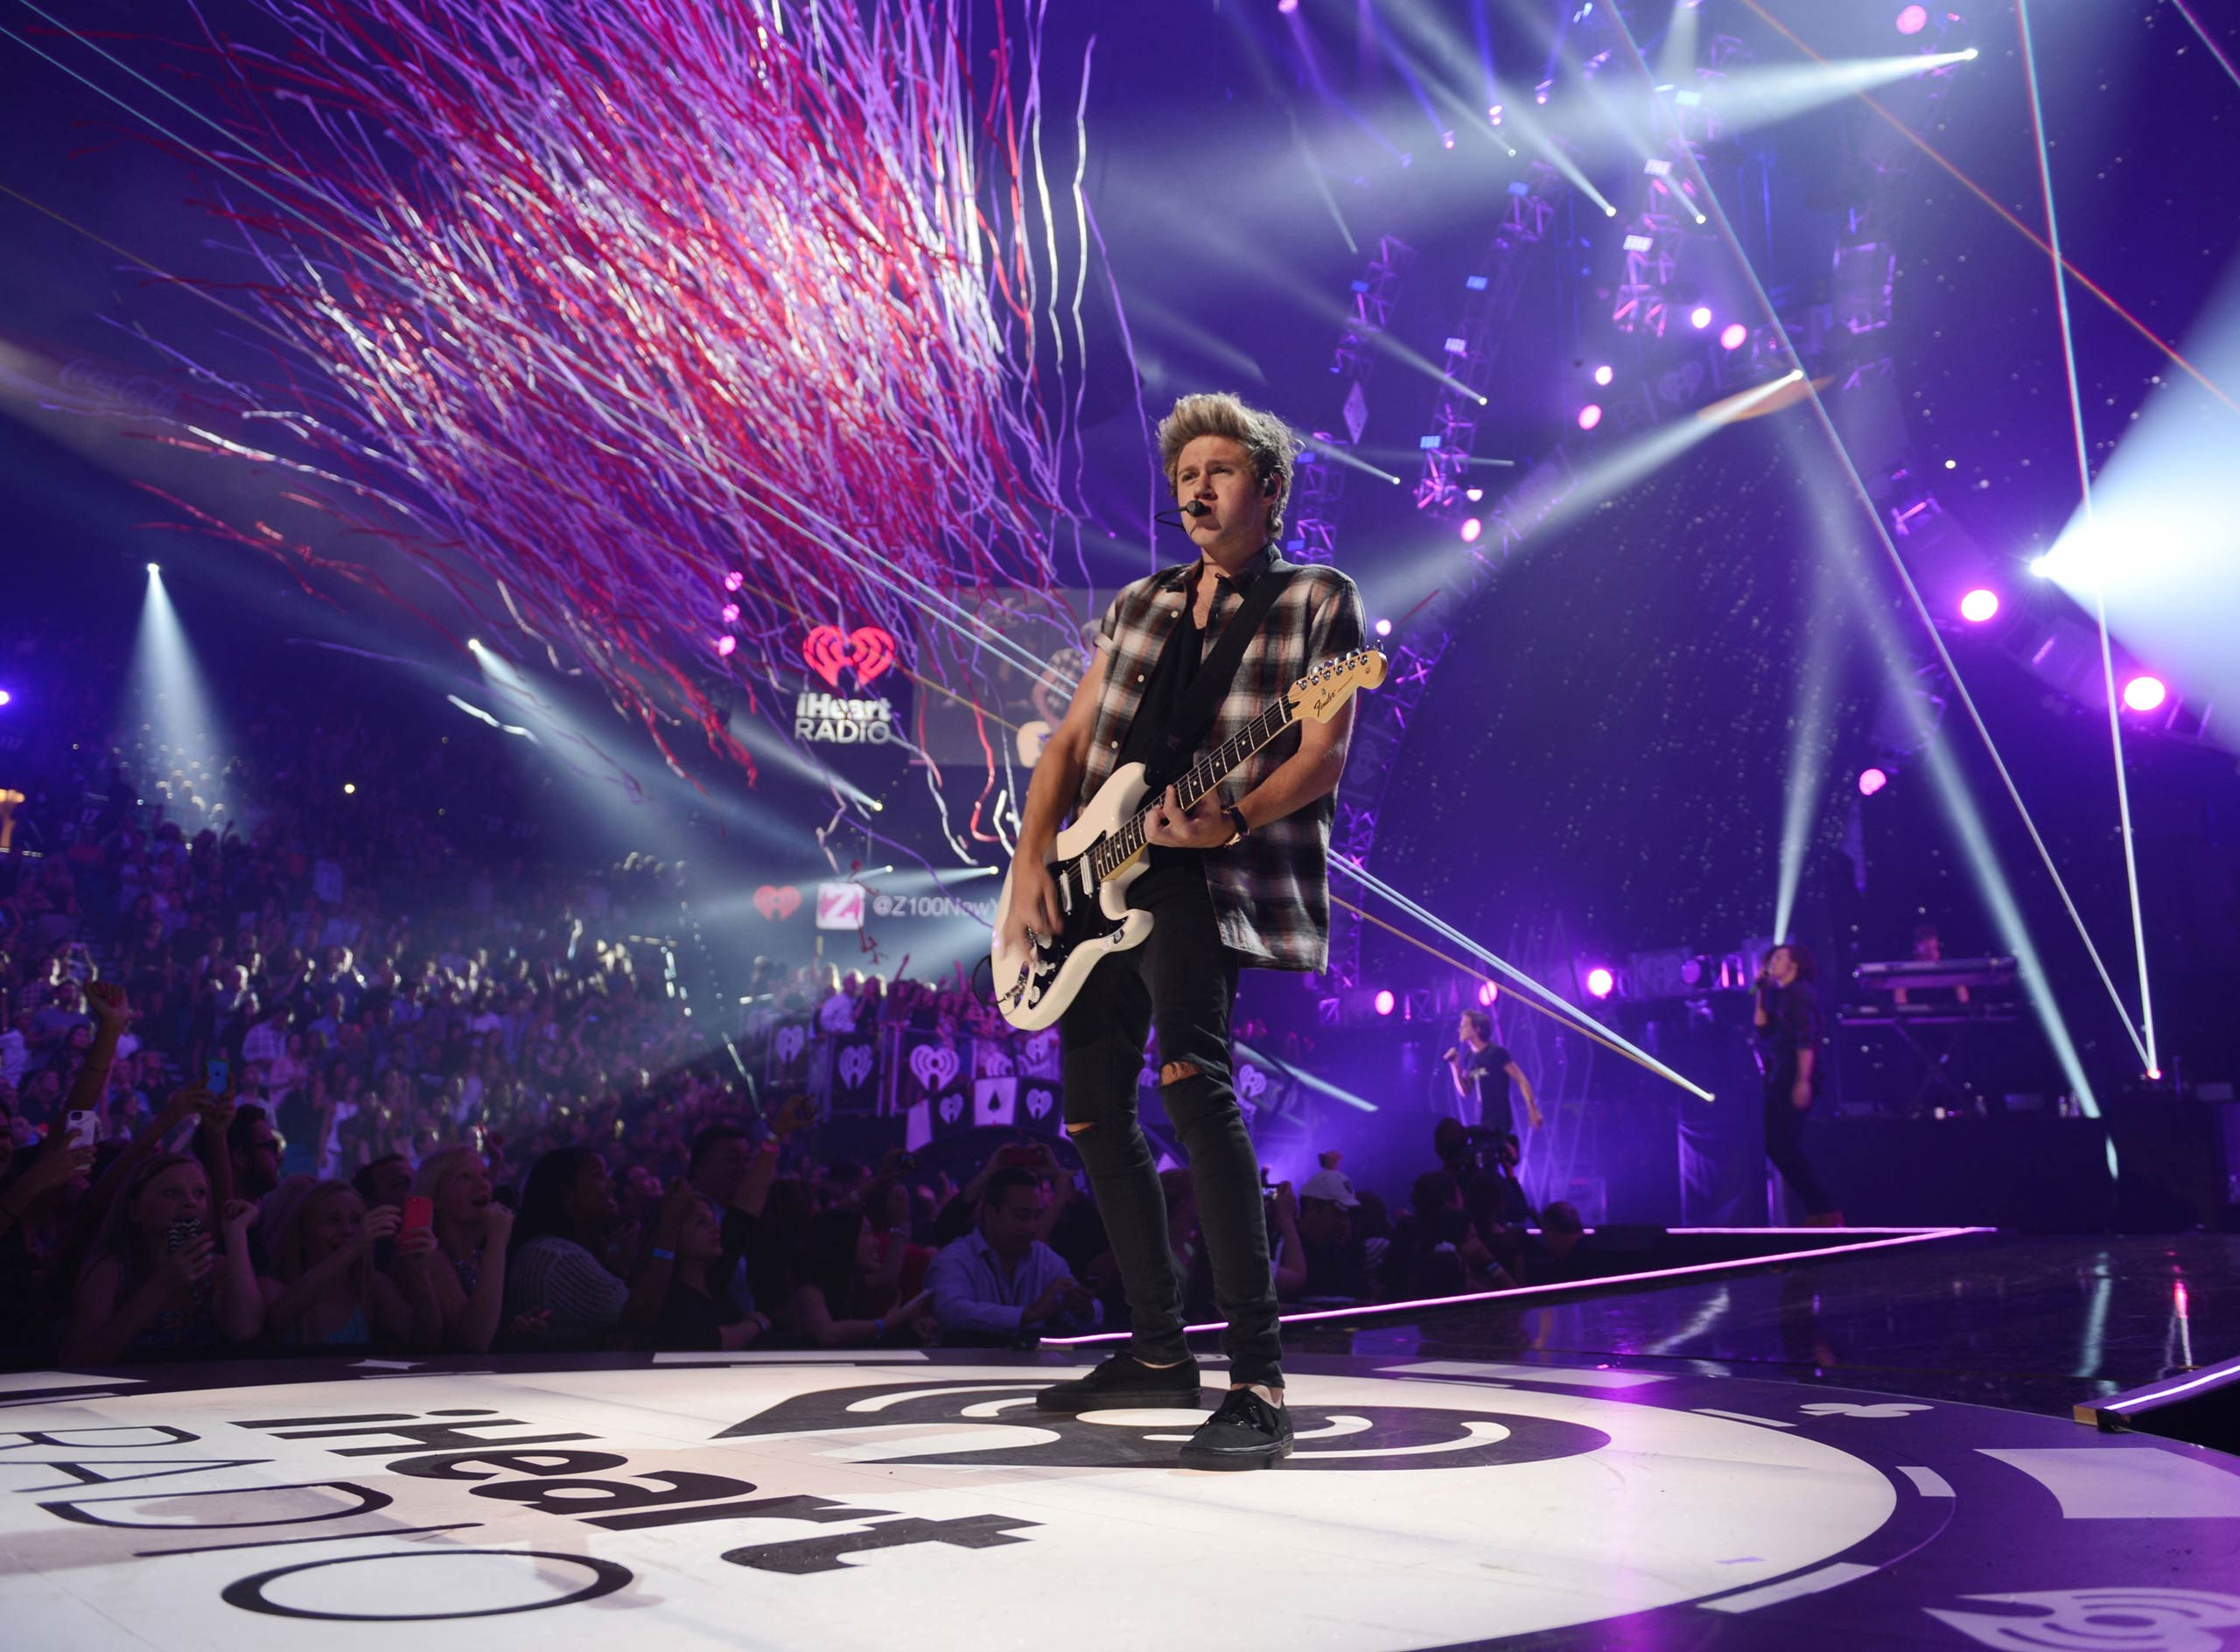 Niall Horan of One Direction performs onstage during the 2014 iHeartRadio Music Festival at the MGM Grand Garden Arena on Sept. 20, 2014 in Las Vegas, NV.